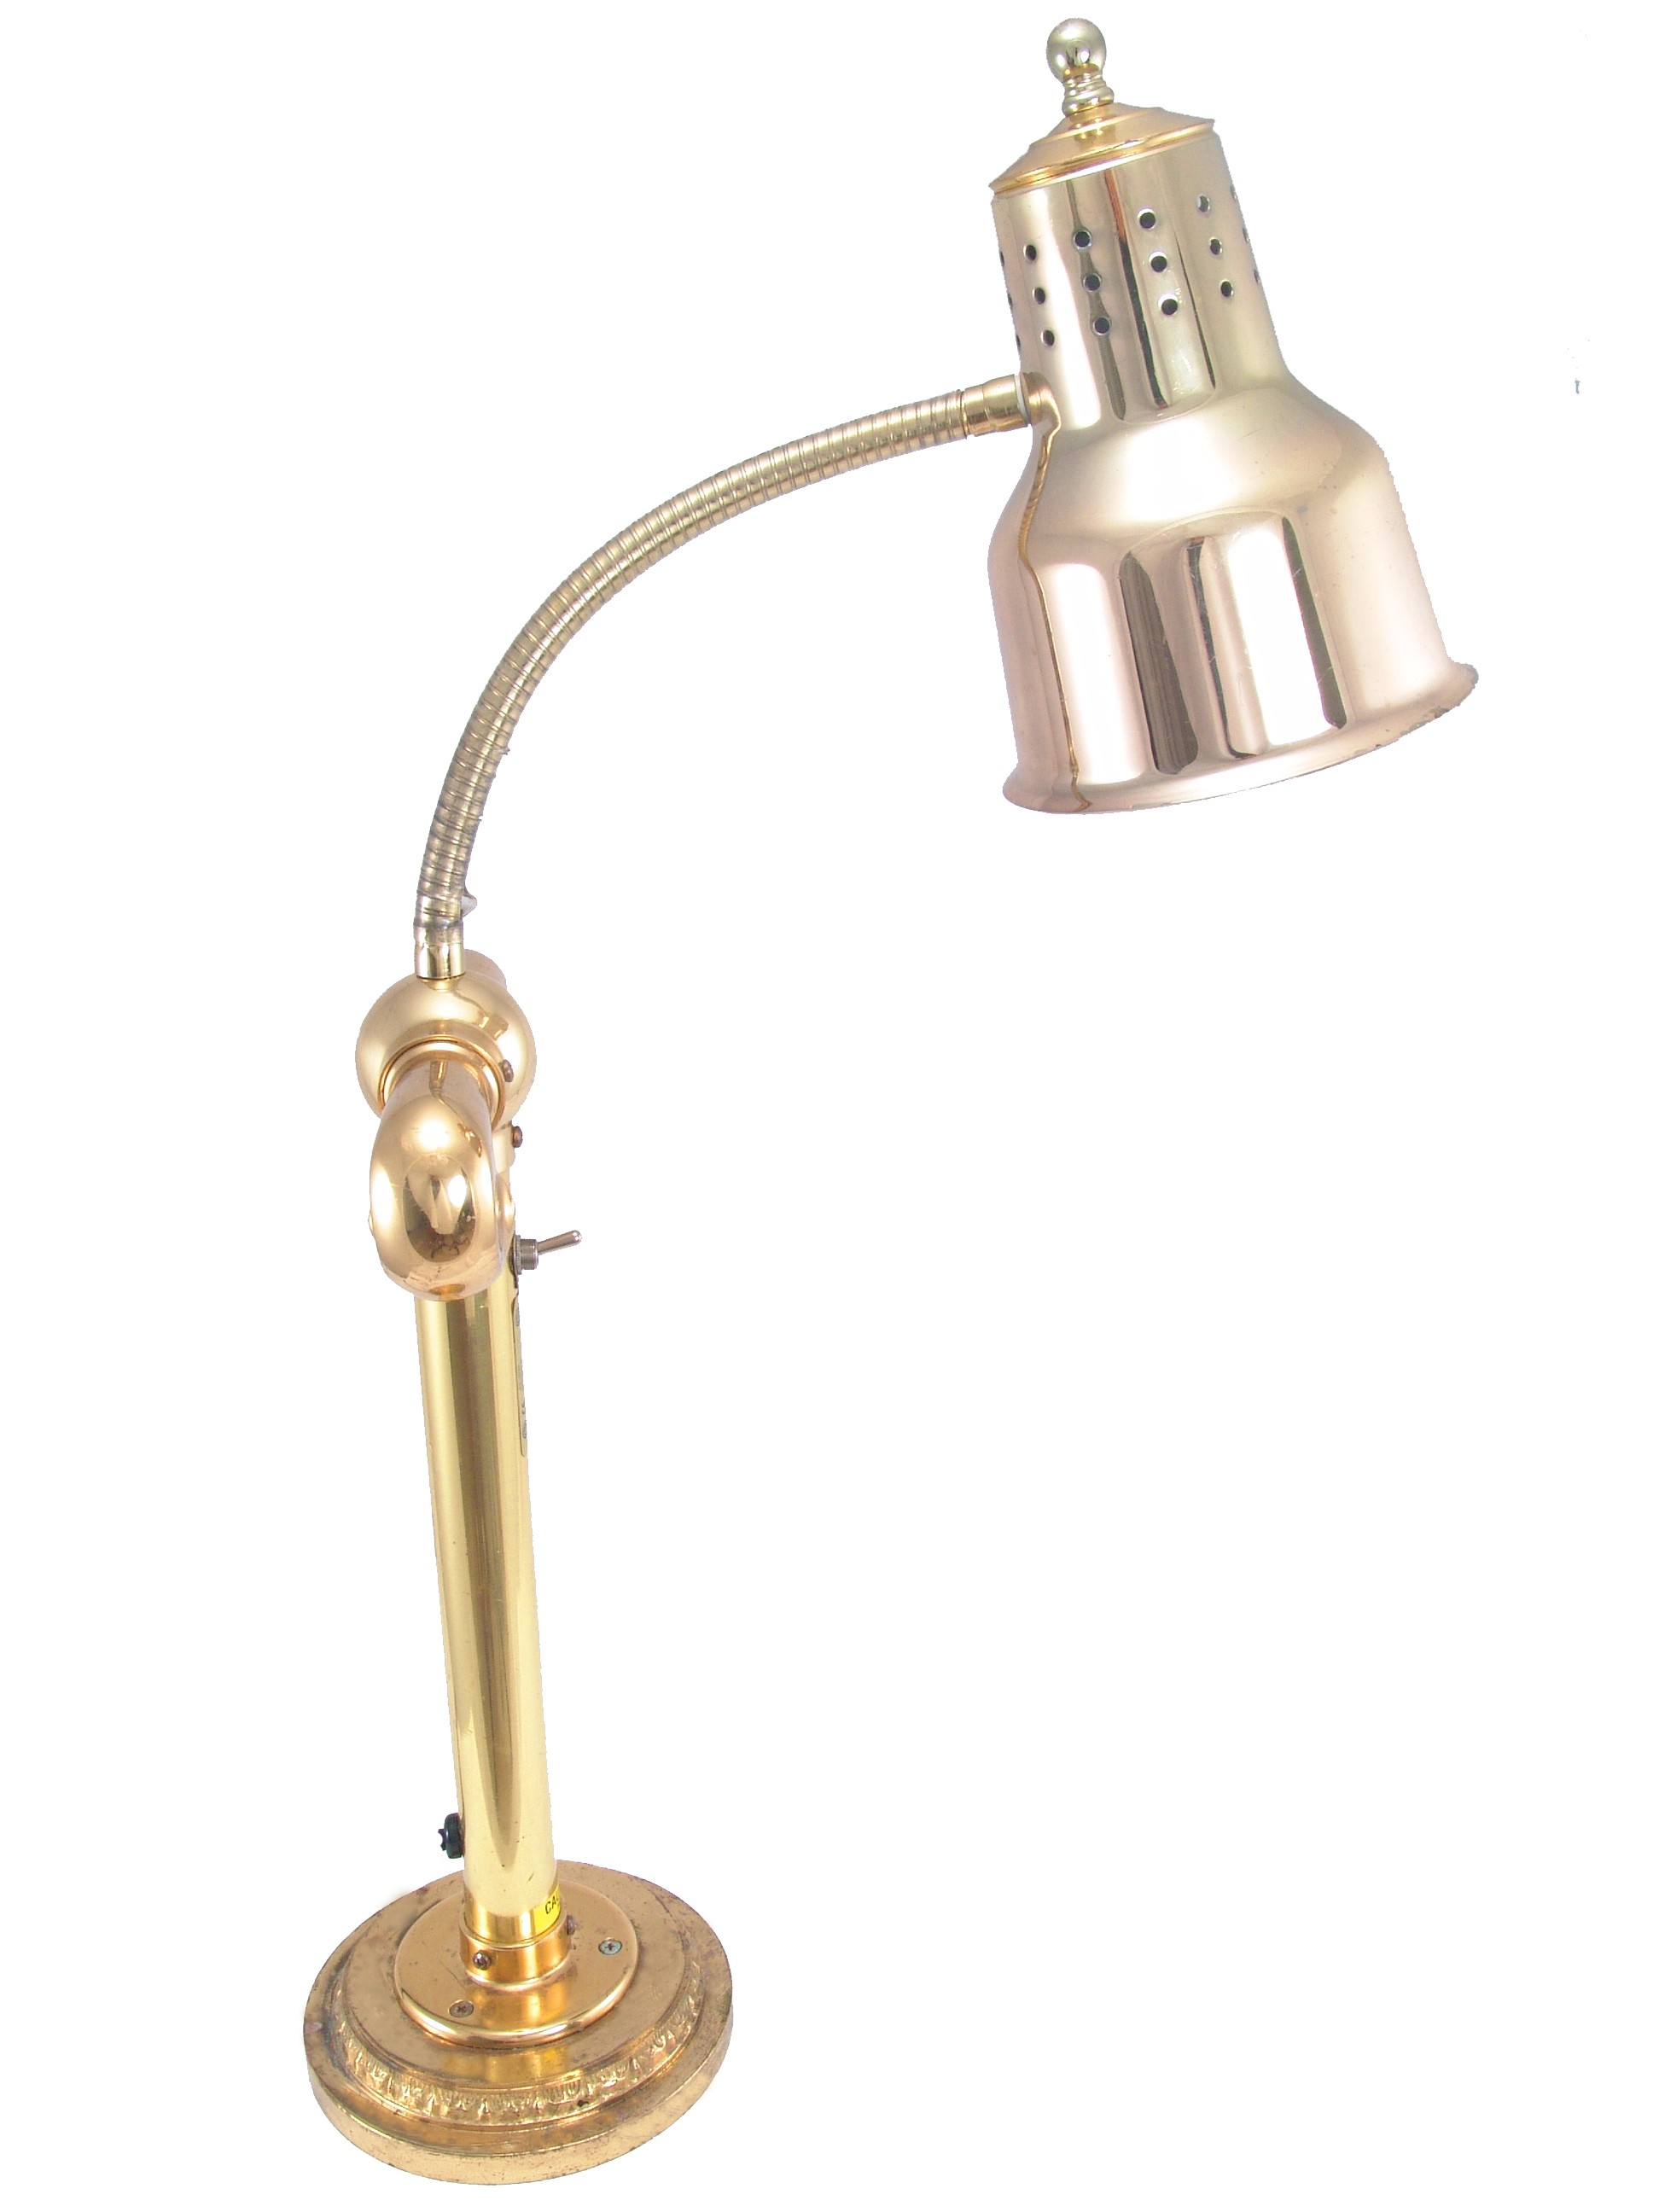 obschenie enhancements room outdoor lamp hanging living buffet complete rental heat brilliant remodel elegant dc lamps retractable